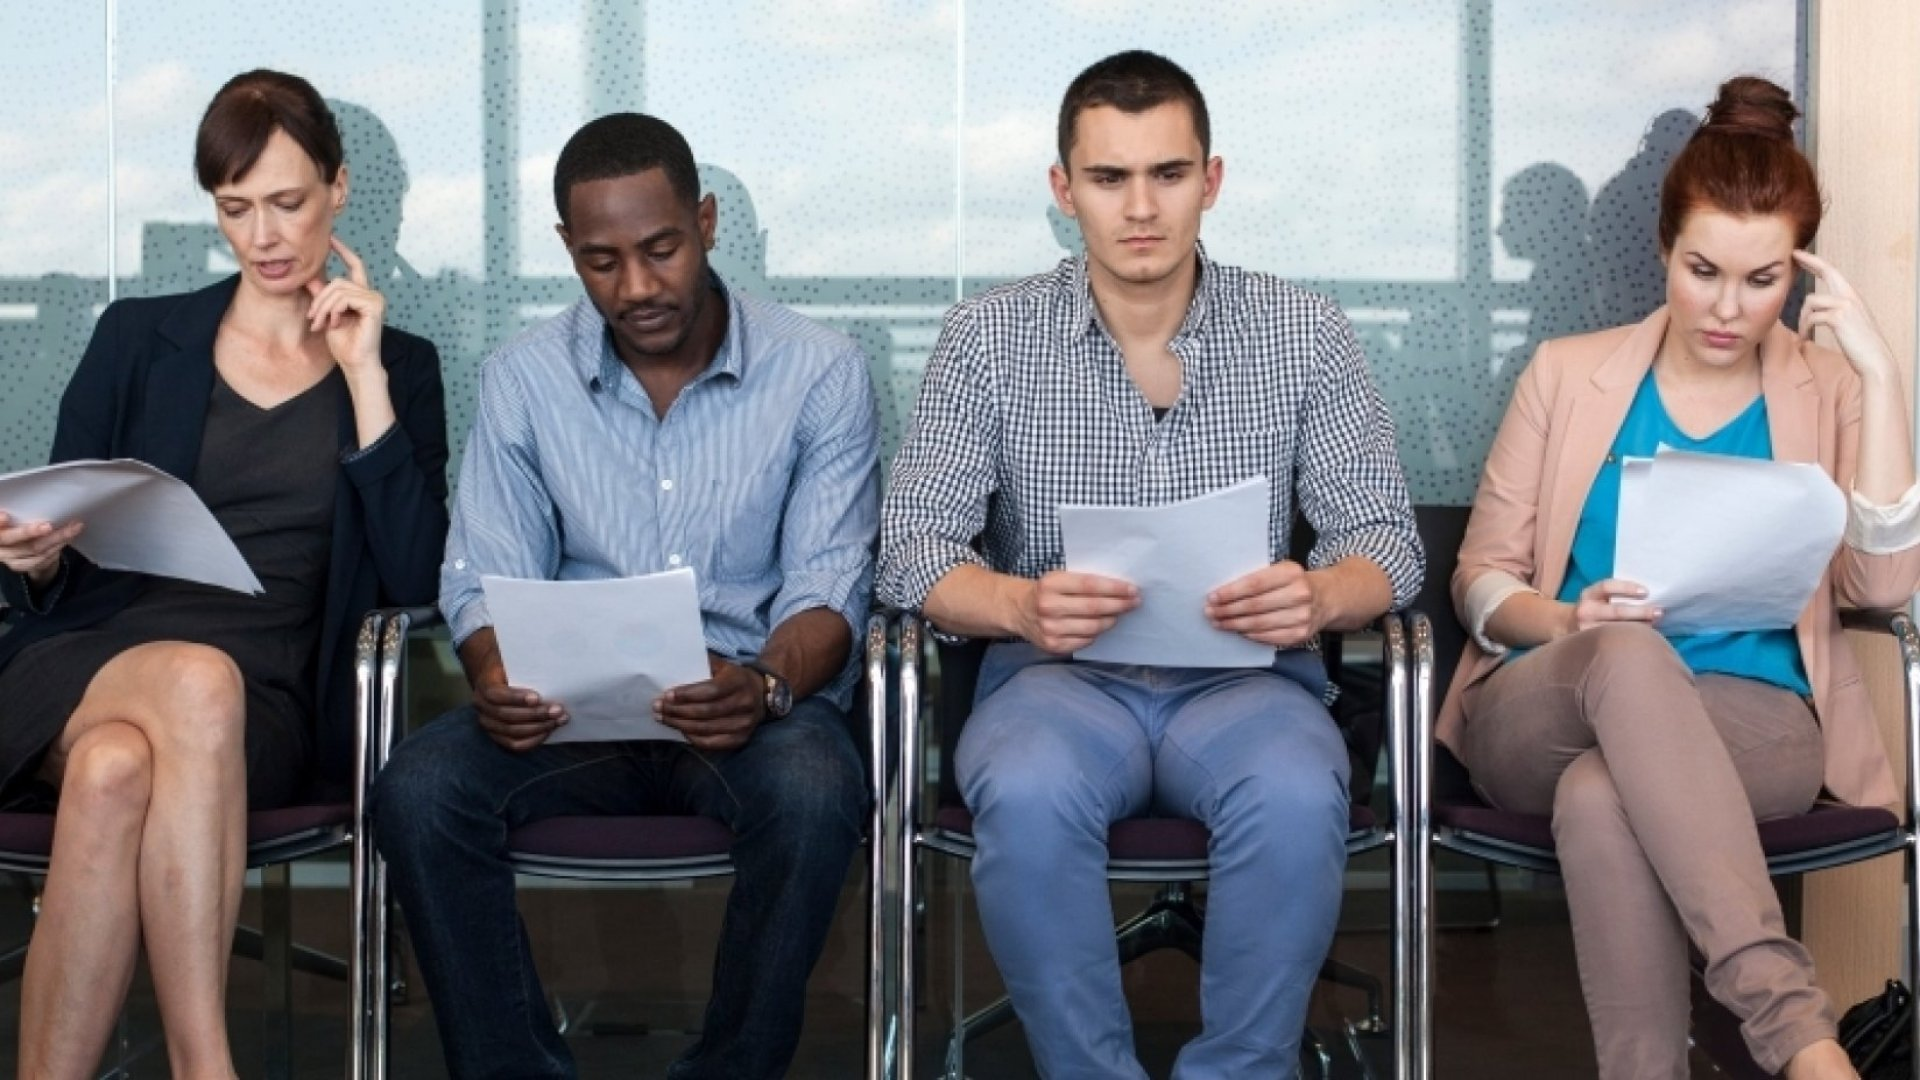 10 Warning Signs You Should Not Take That Job Offer